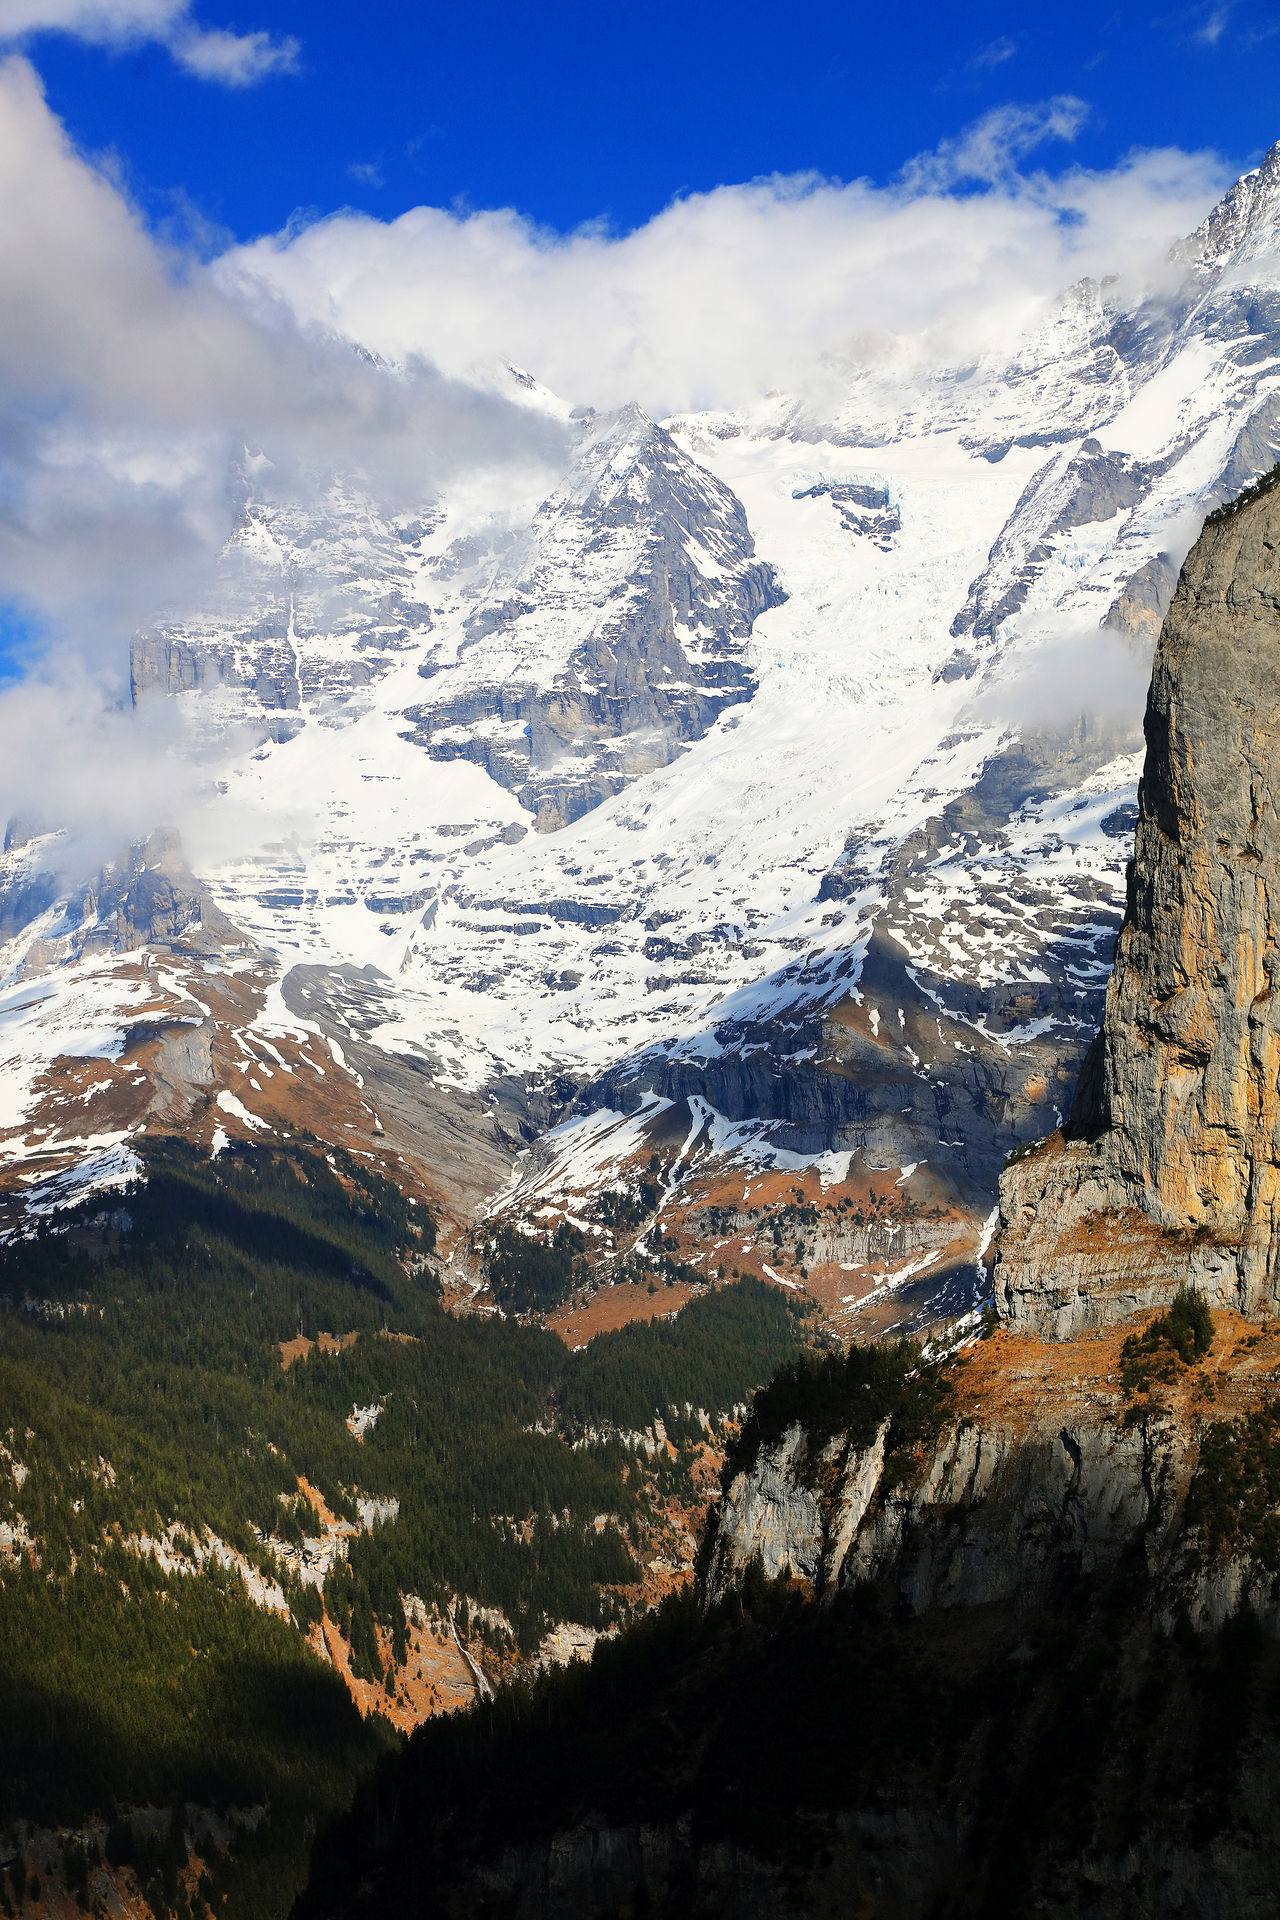 Canon Alpi Beauty In Nature Berne Berner Oberland Day Jungfrau Landscape Landscape_Collection Mountain Mountain Range Nature No People Outdoors Scenics Sky Swimming Switzerland Tranquil Scene Tranquility Travel Destinations